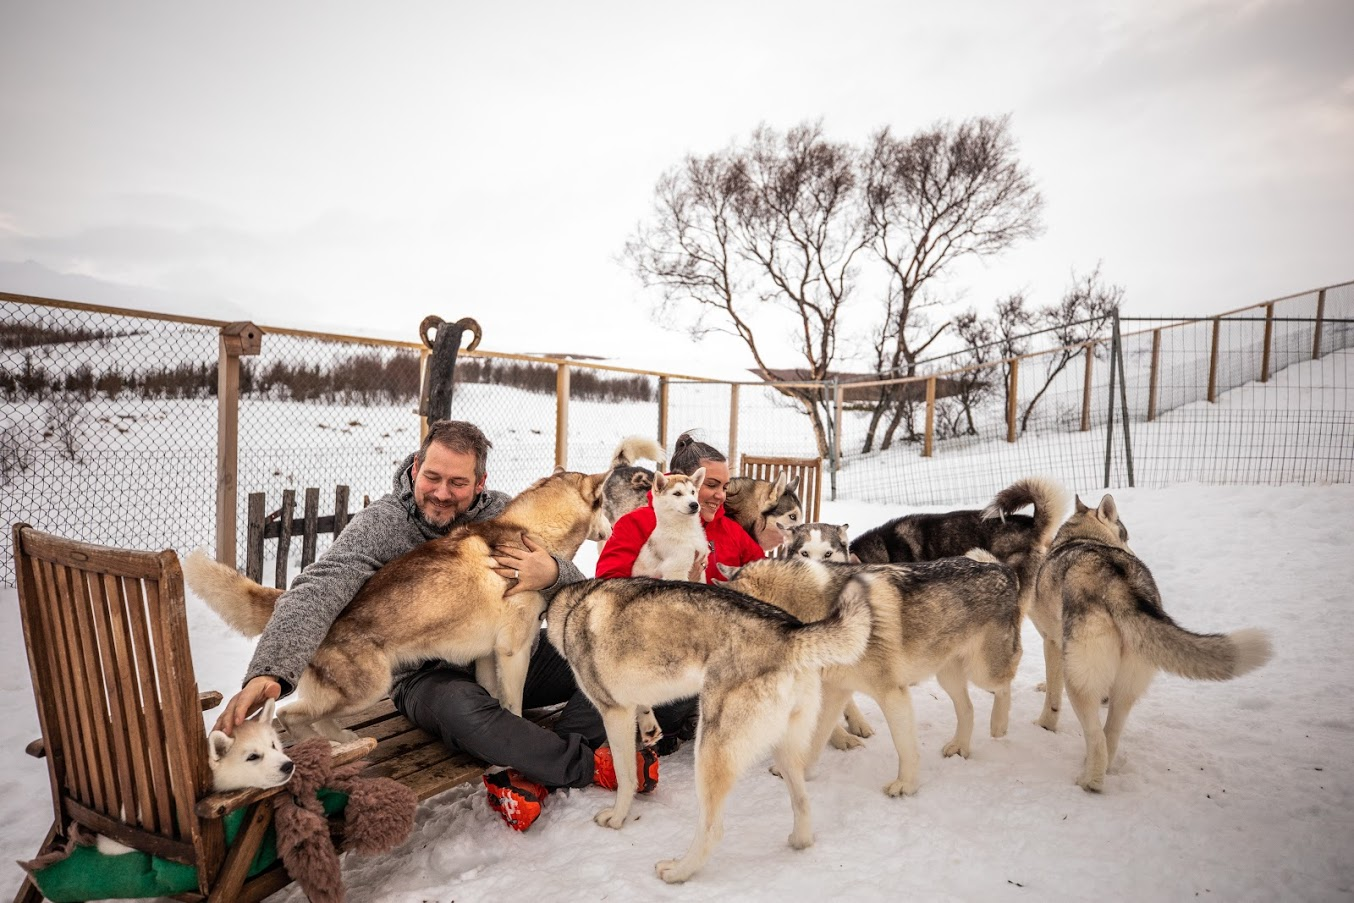 Huskies with their owners in North Iceland during winter.